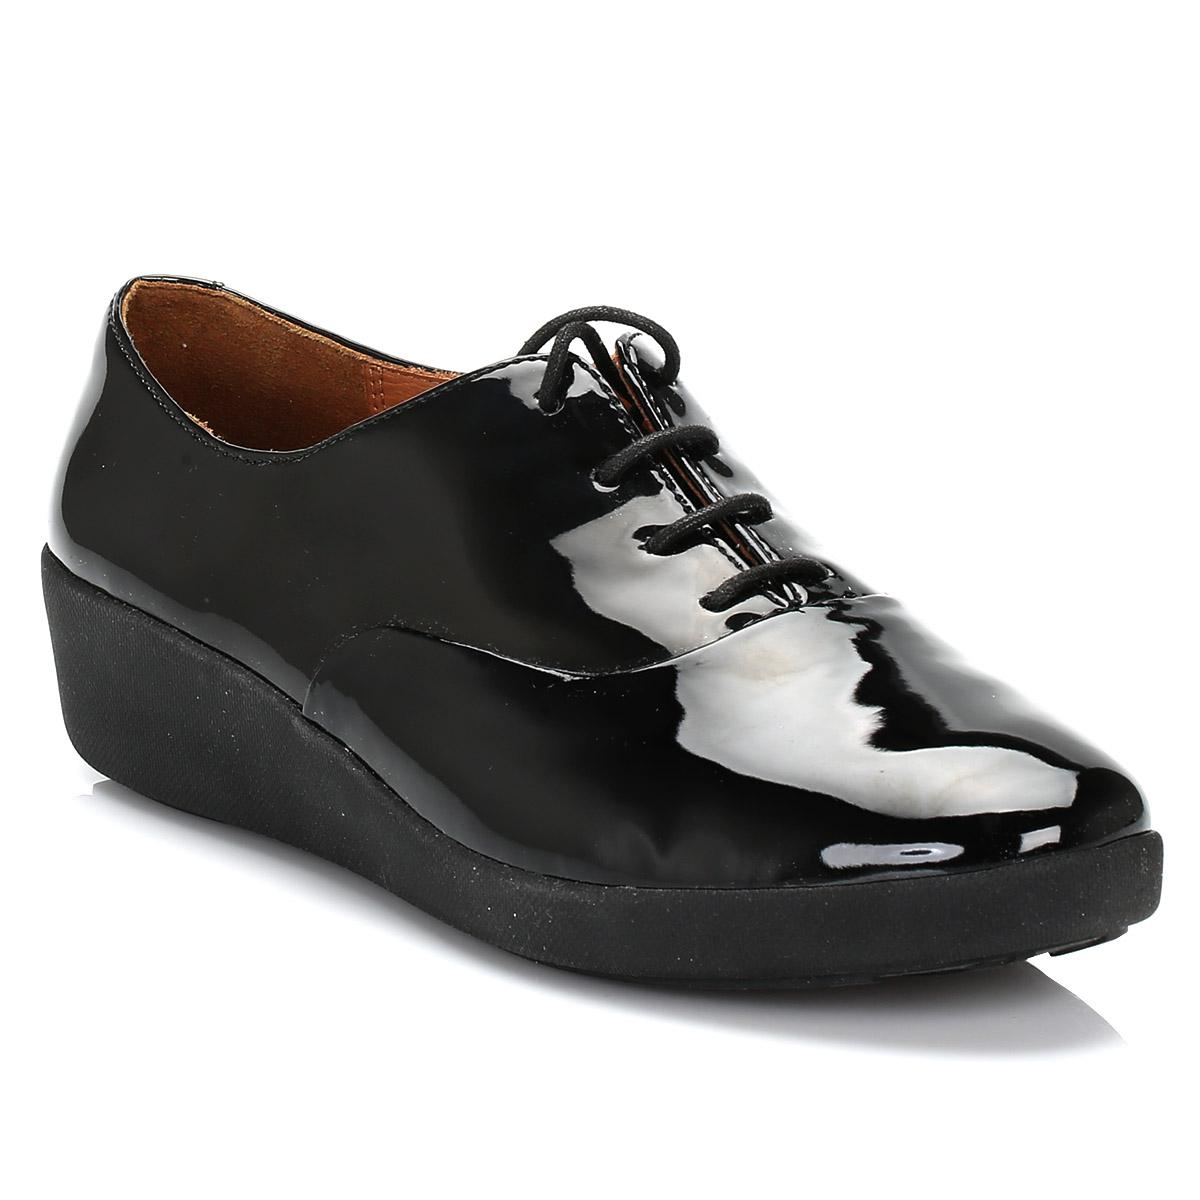 3b271d5cd8ba10 Fitflop Ff2 By Tm Womens Black F-pop Patent Leather Oxford Shoes in ...